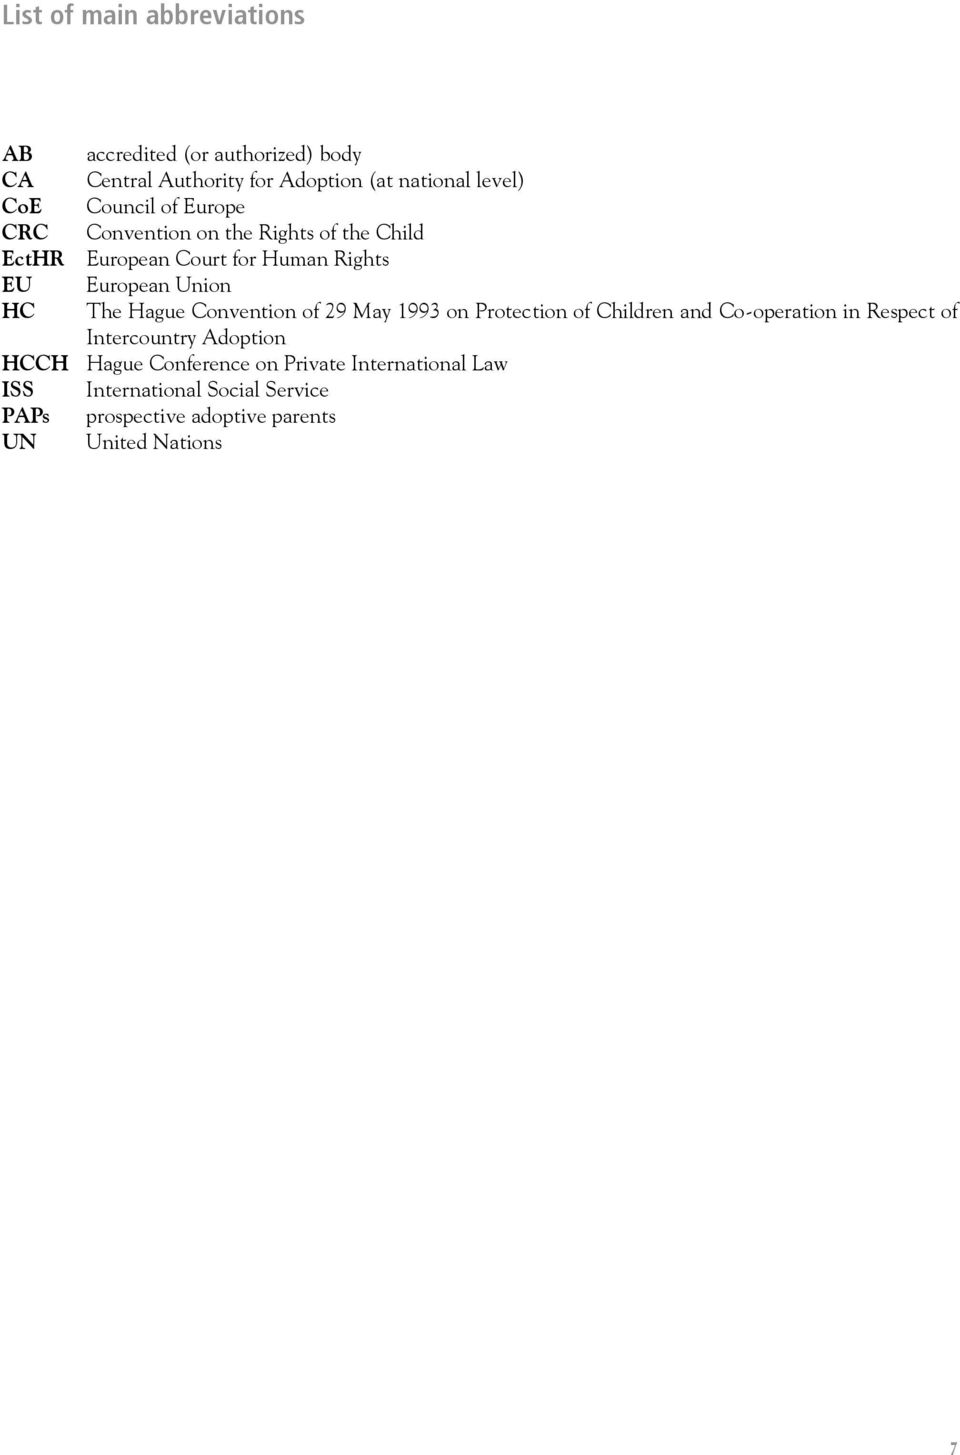 Hague Convention of 29 May 1993 on Protection of Children and Co-operation in Respect of Intercountry Adoption HCCH Hague